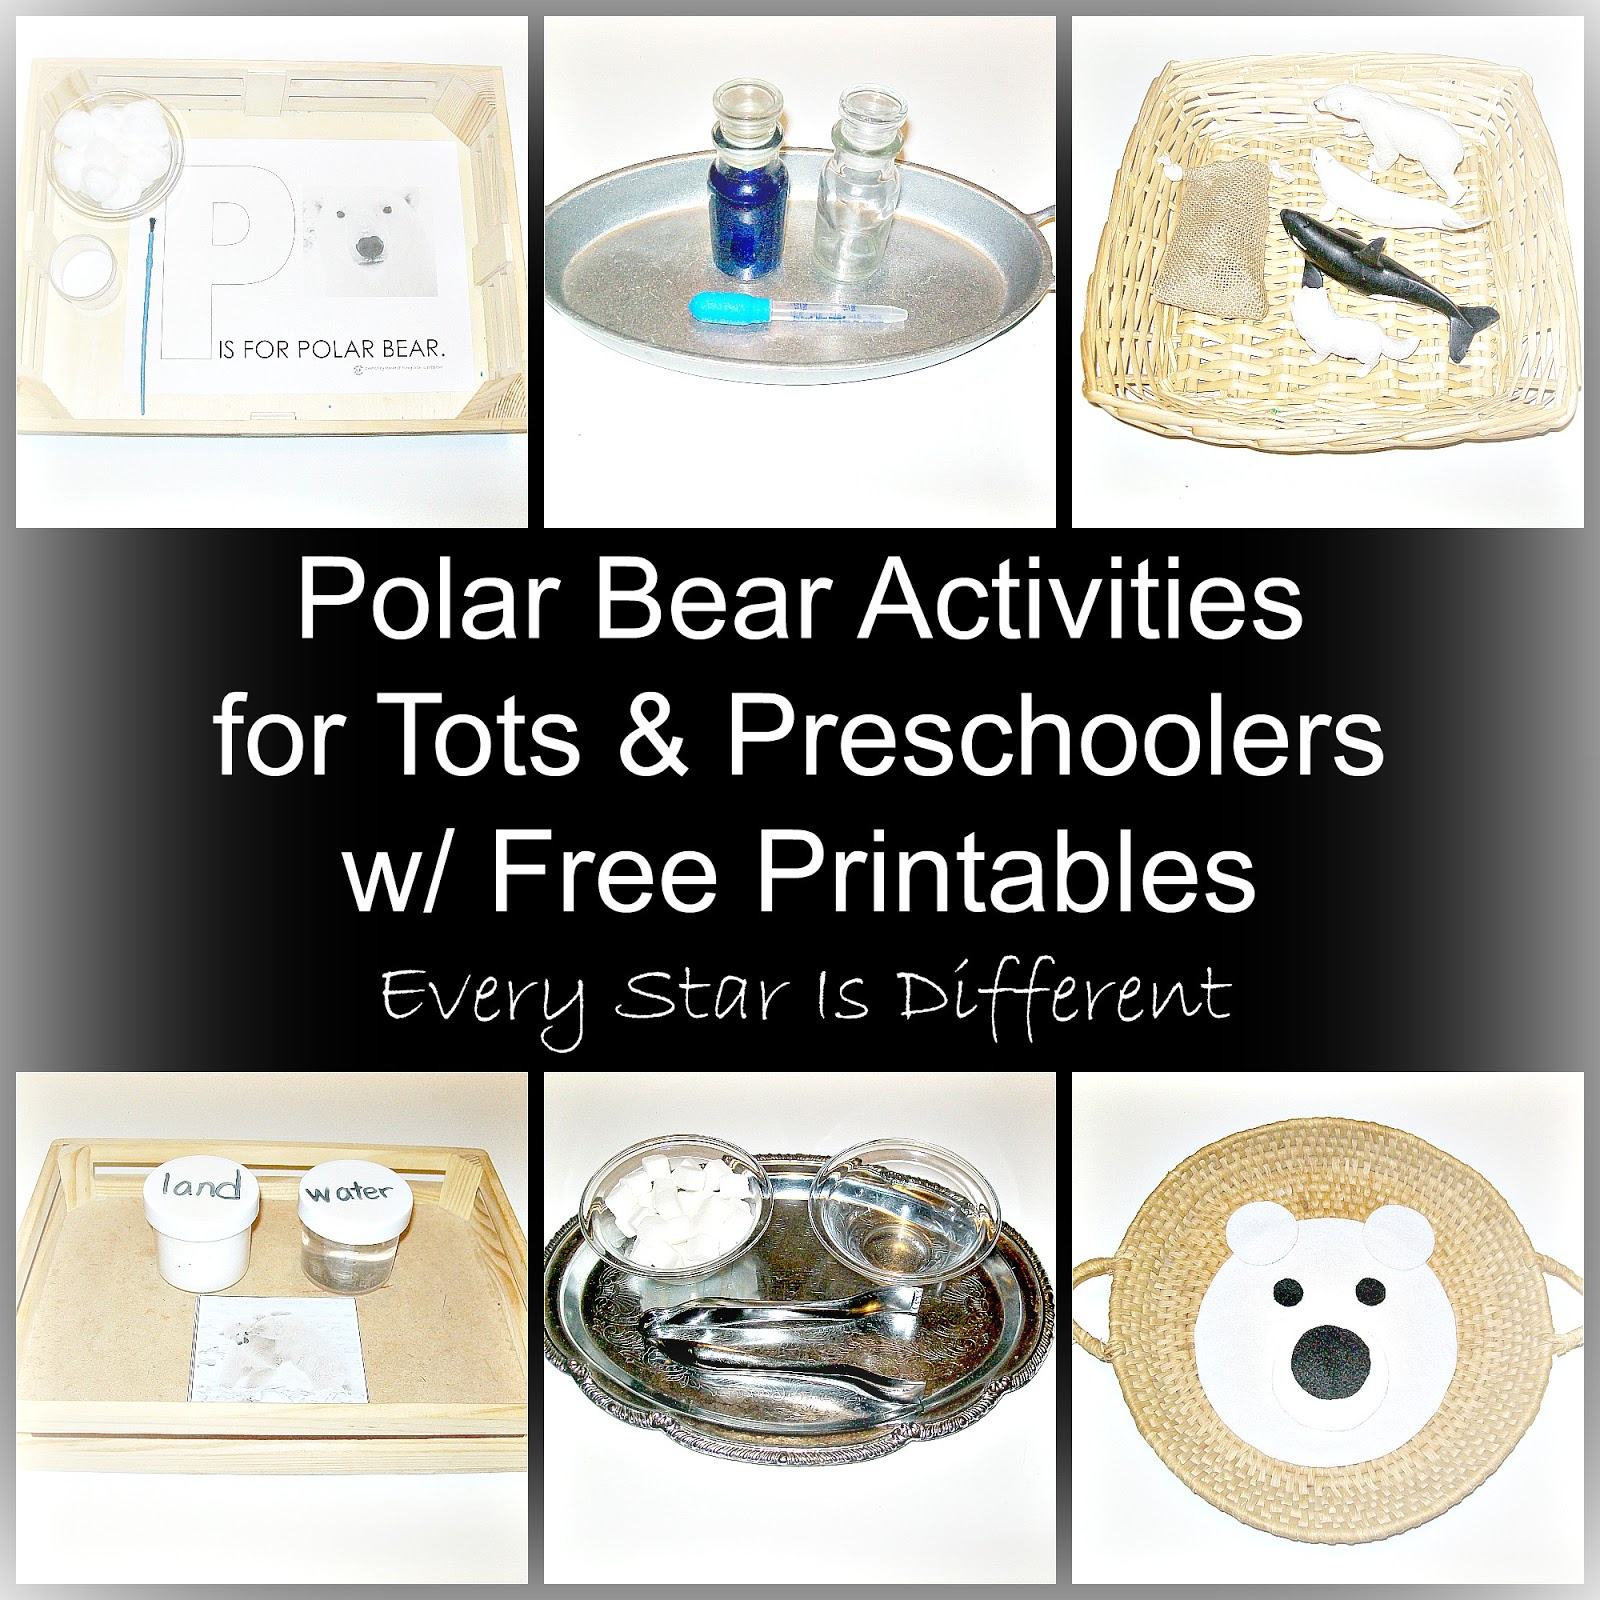 Animals Of Africa Activities For Tots Amp Preschoolers W